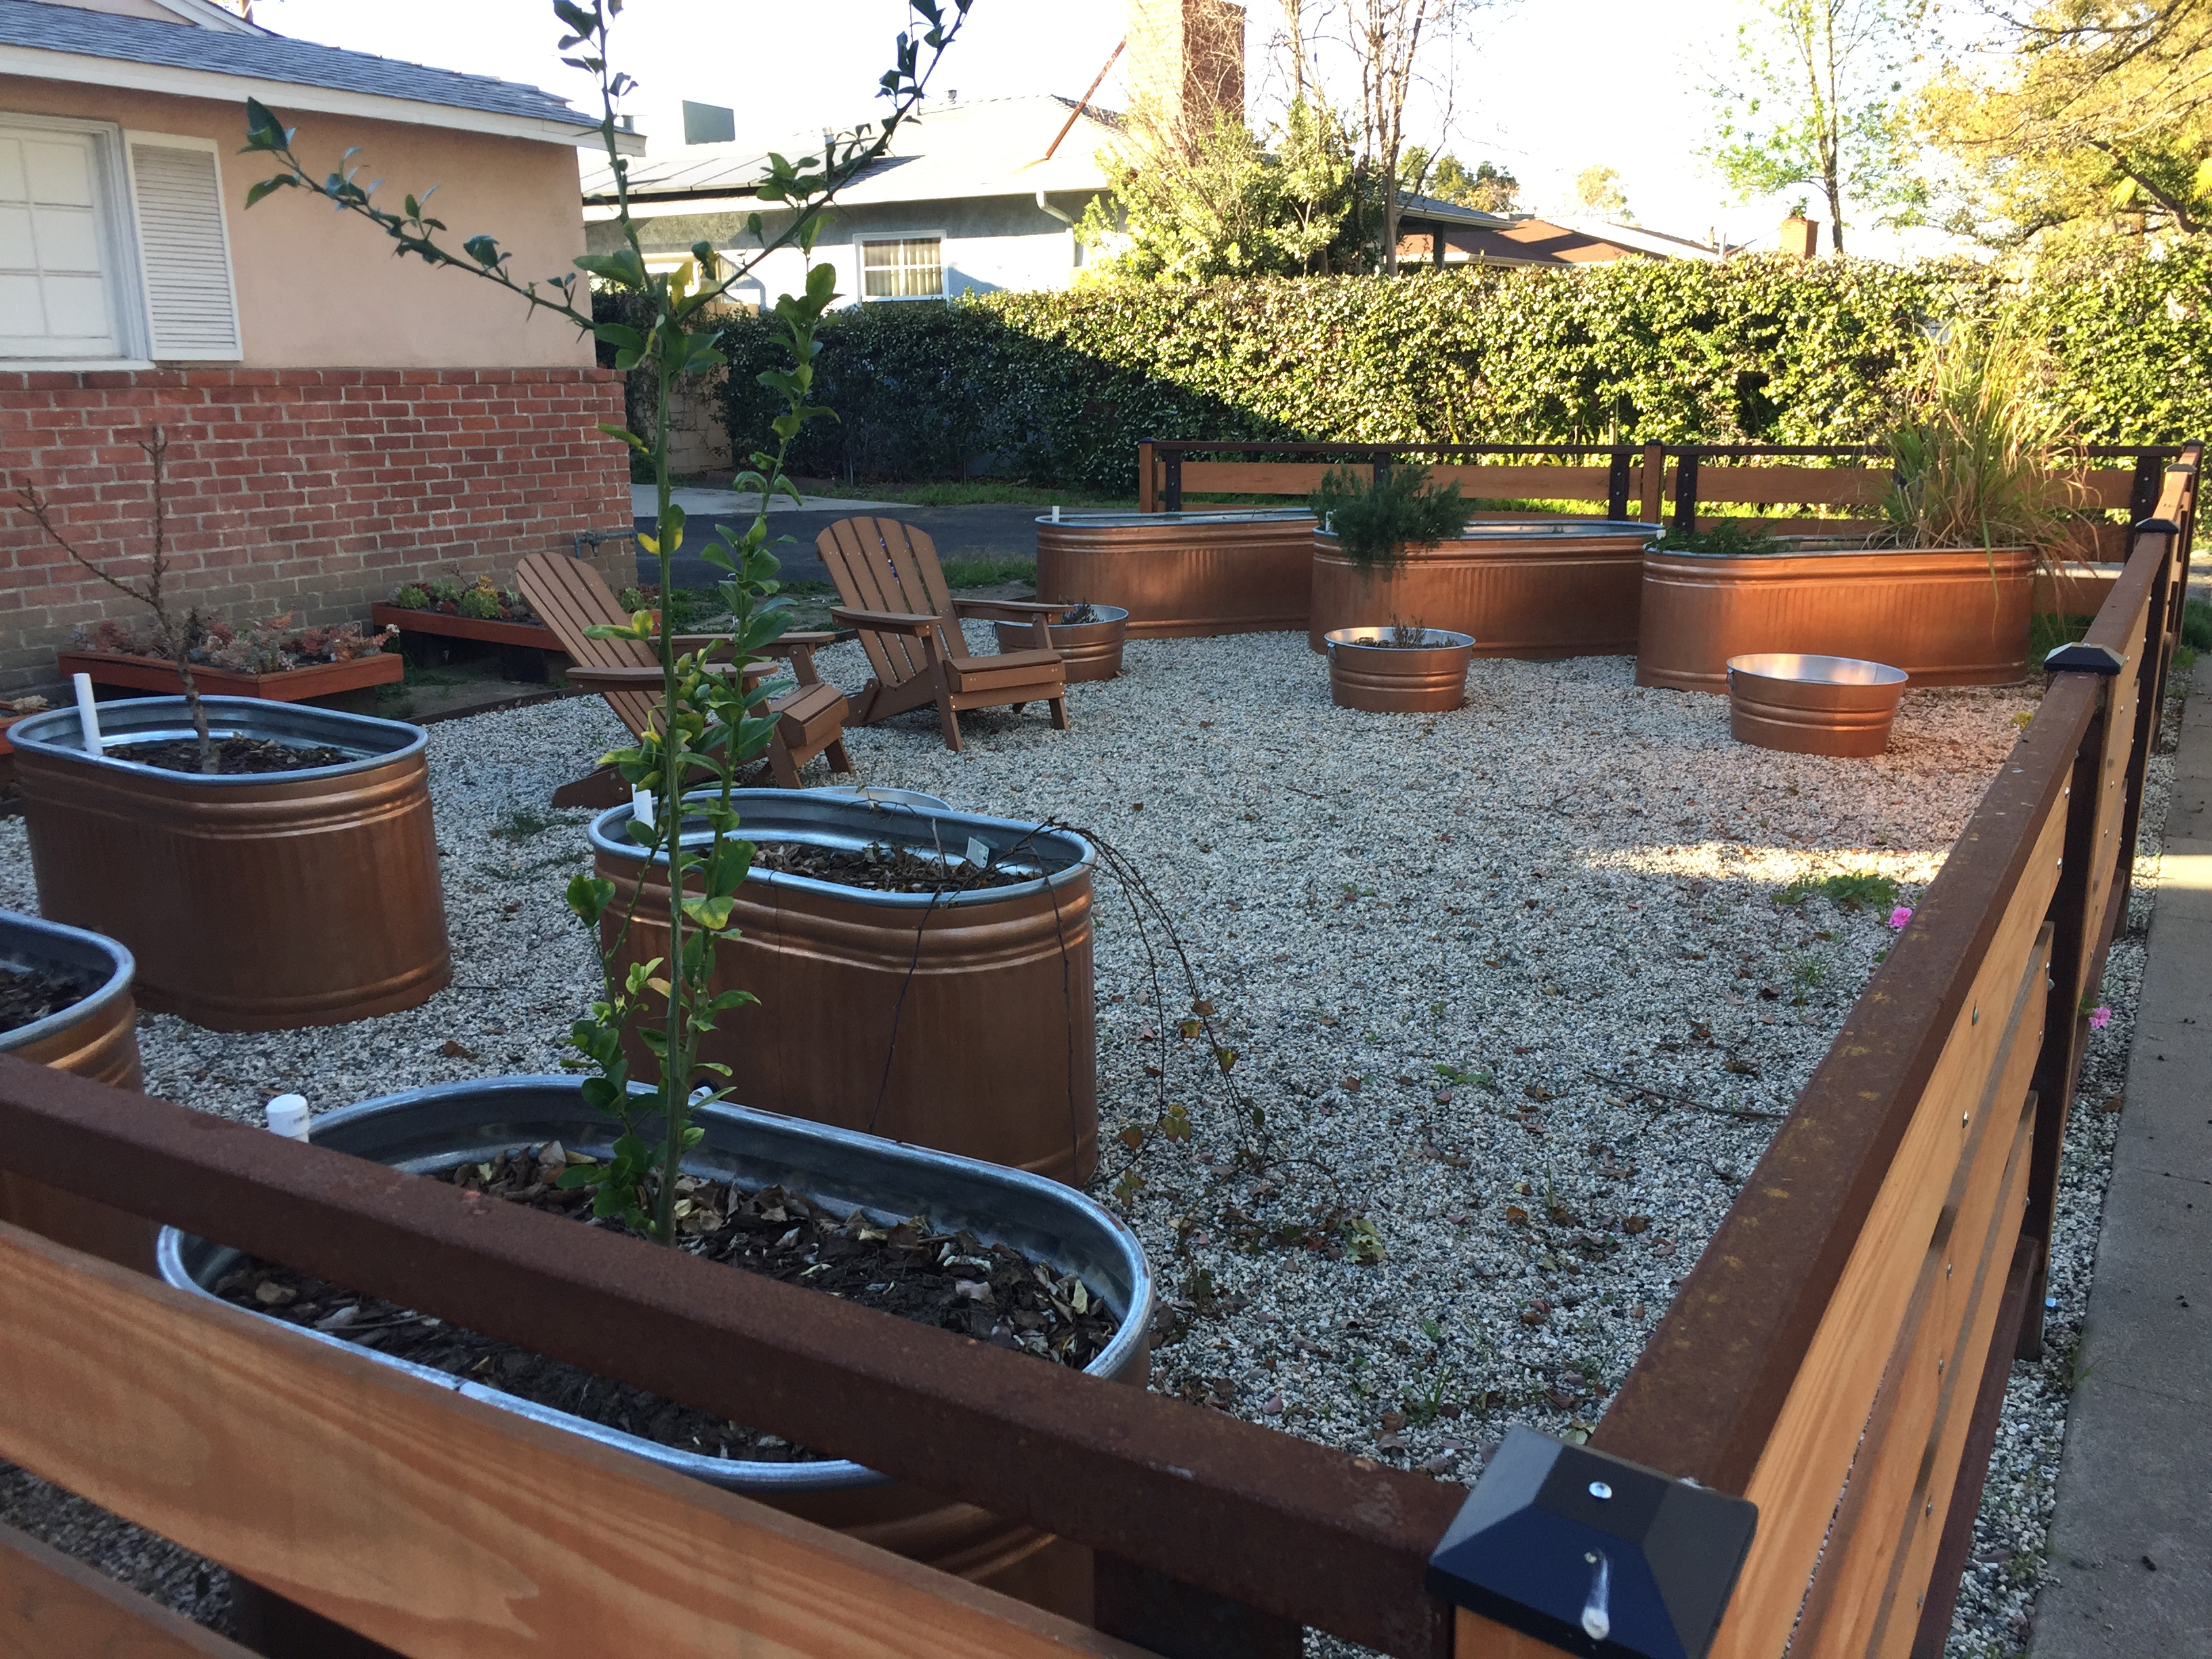 Large scale container garden with galvanized tanks in the neighborhood a gardener 39 s notebook - Galvanized containers for gardening ...